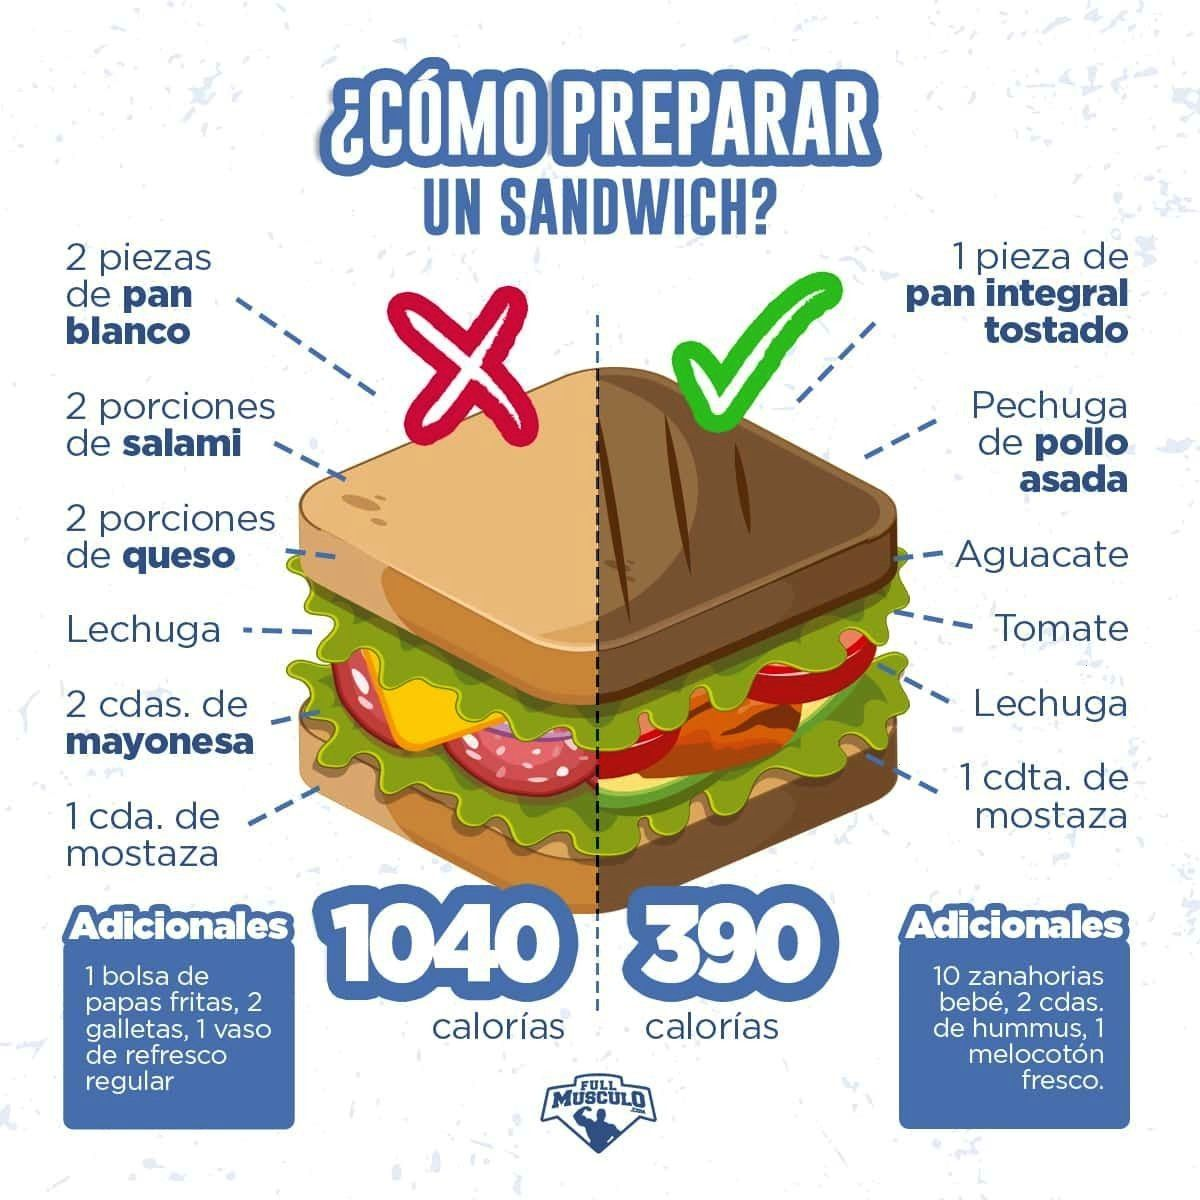 #infographic #infografia #nutrición #saludable #nutrition #sandwich #perfecto #healthy #fitness #hea...